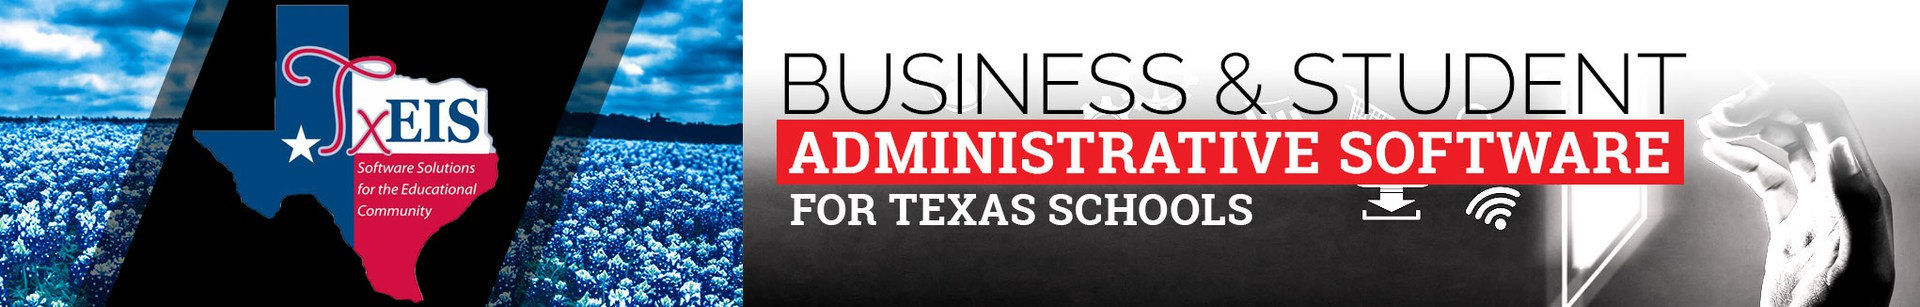 Business Administration for Texas Schools